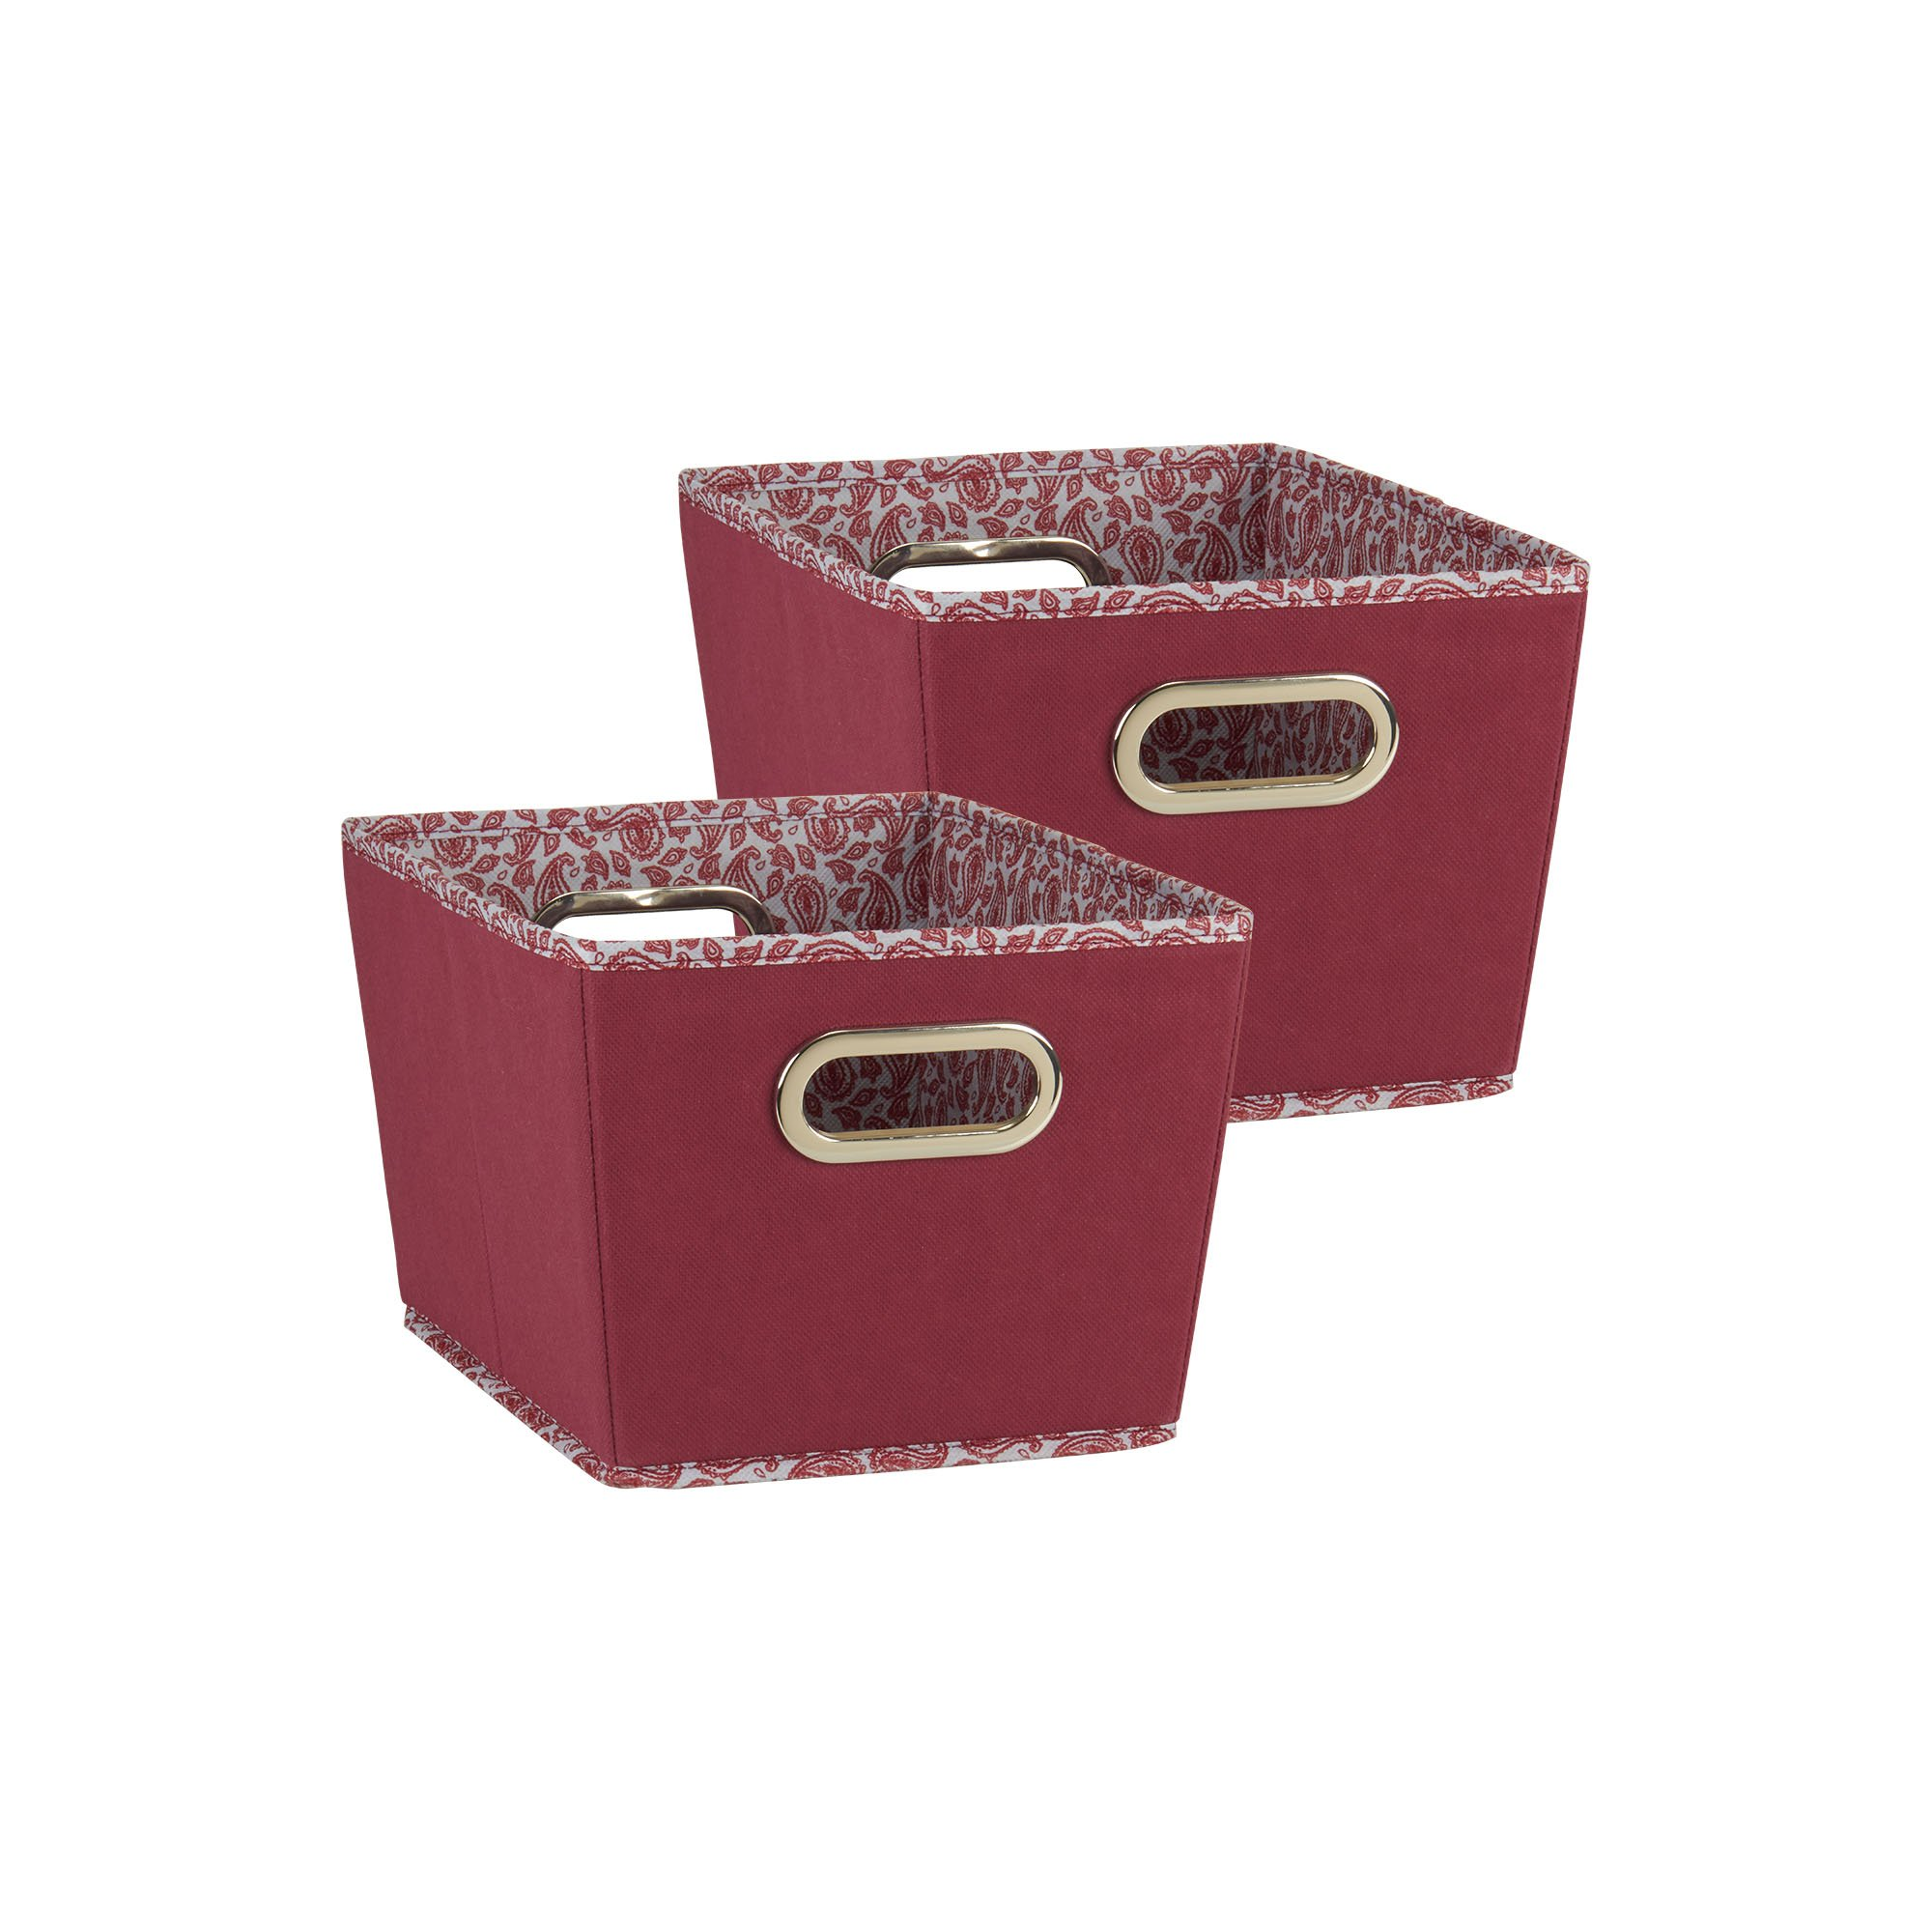 Household Essentials 75 Small Tapered Decorative Storage Bins | 2 Pack Set Cubby  Baskets | Red